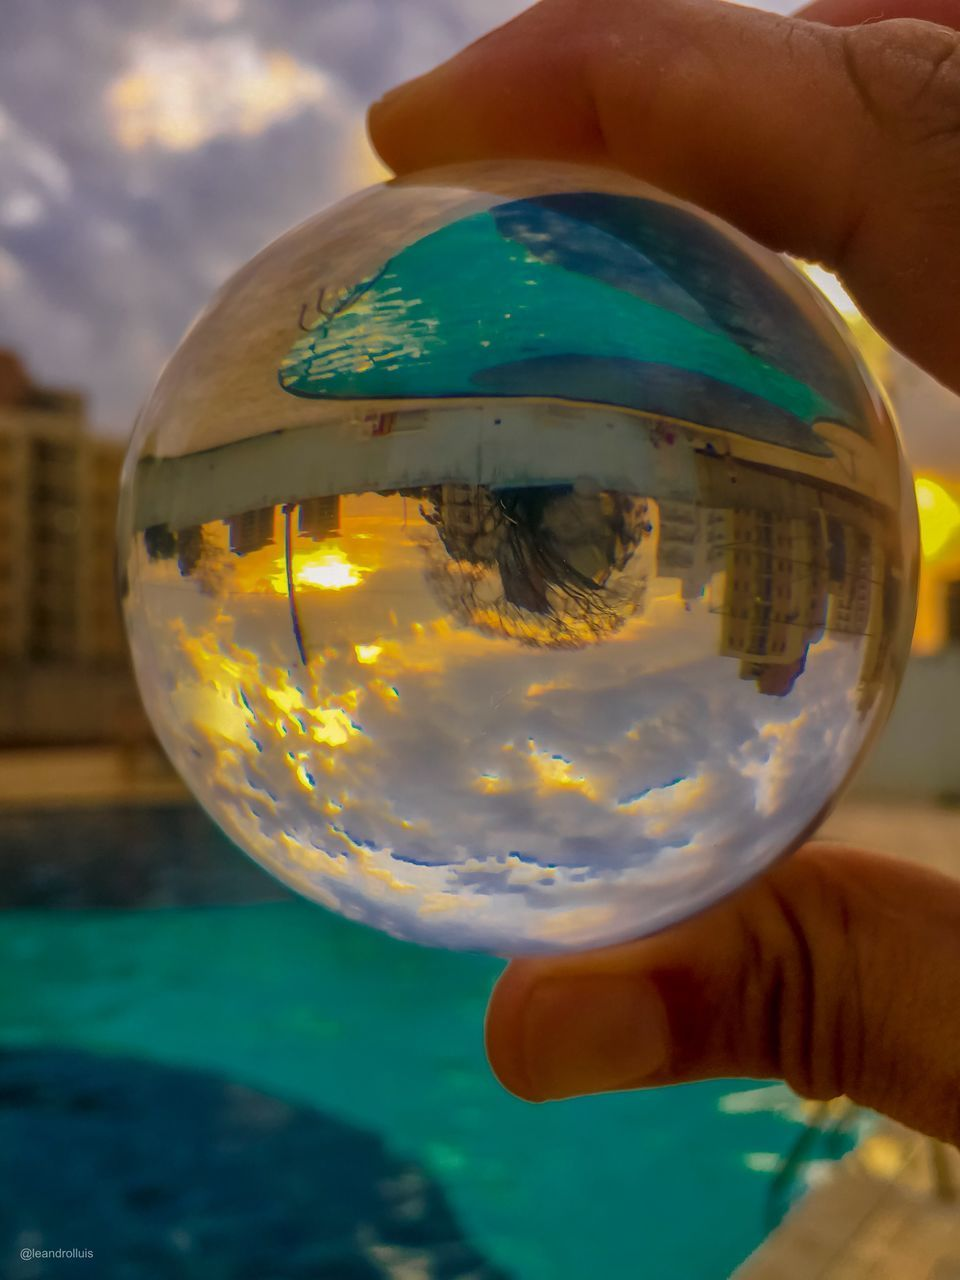 hand, one person, human hand, human body part, holding, real people, transparent, sphere, glass - material, close-up, finger, lifestyles, unrecognizable person, body part, human finger, focus on foreground, leisure activity, nature, reflection, outdoors, glass, human limb